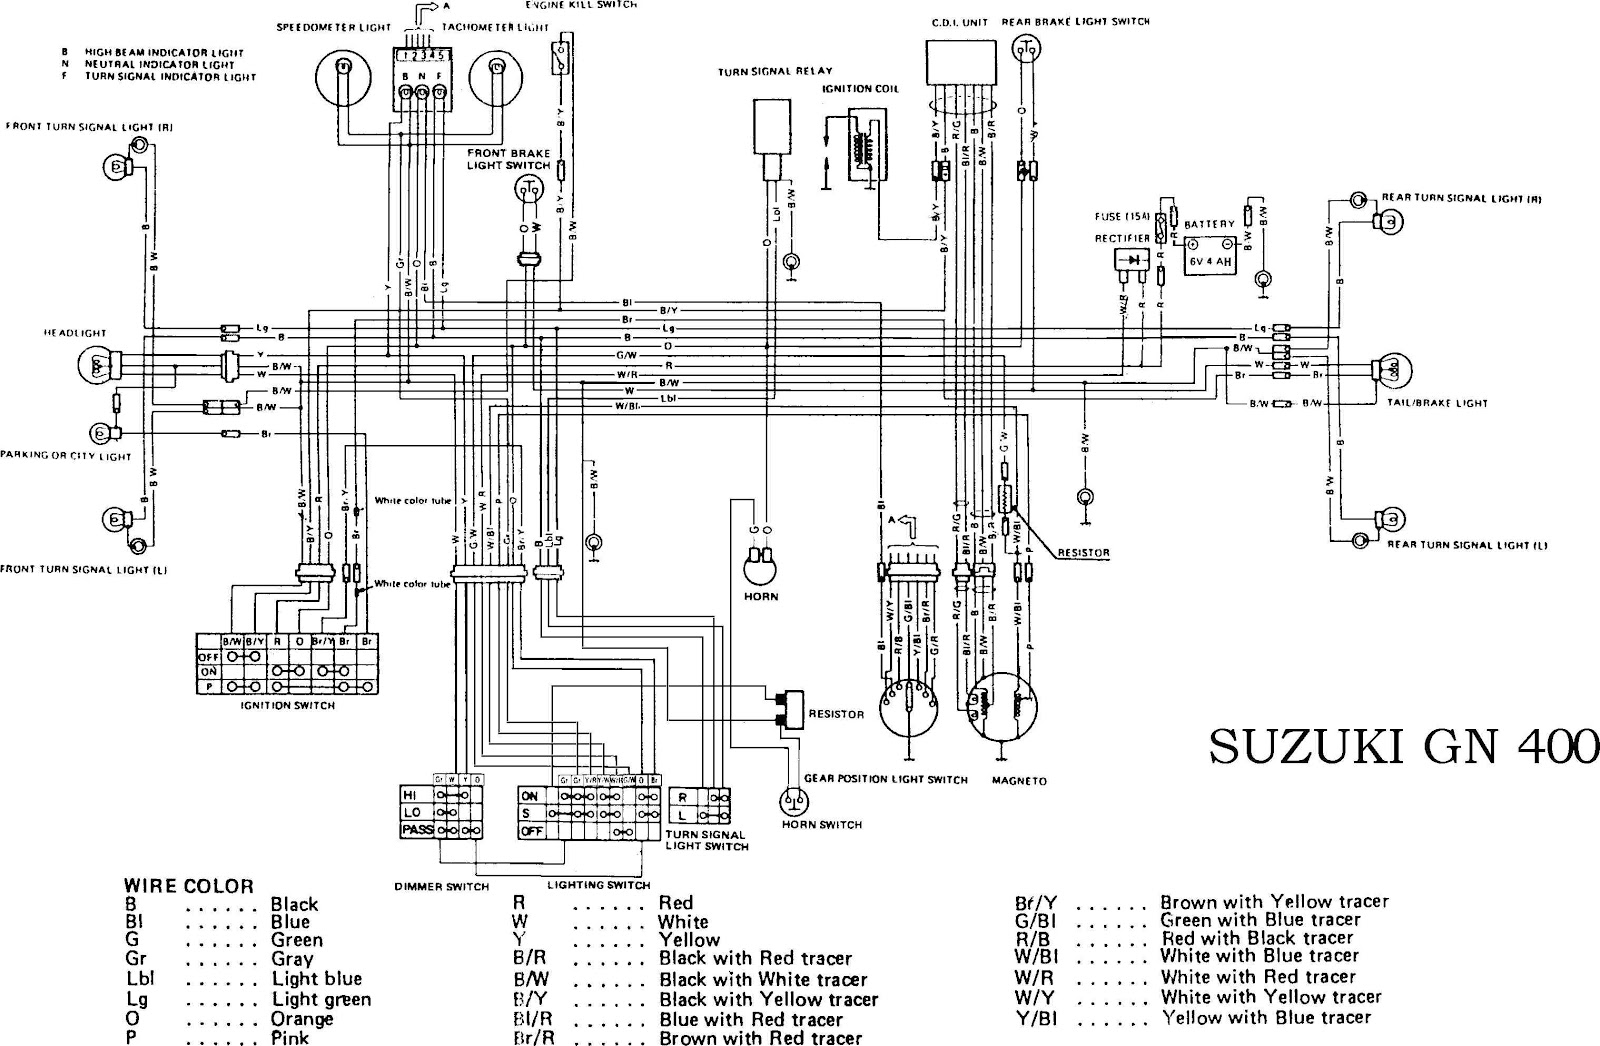 Hrg Wiring Diagram also Hino Wiring Diagram Schematic likewise Discussion T20312 ds660421 as well King Resistor Diagram in addition 6j014 Ford 350 2008 350 Will Not Park. on king dome wiring diagram